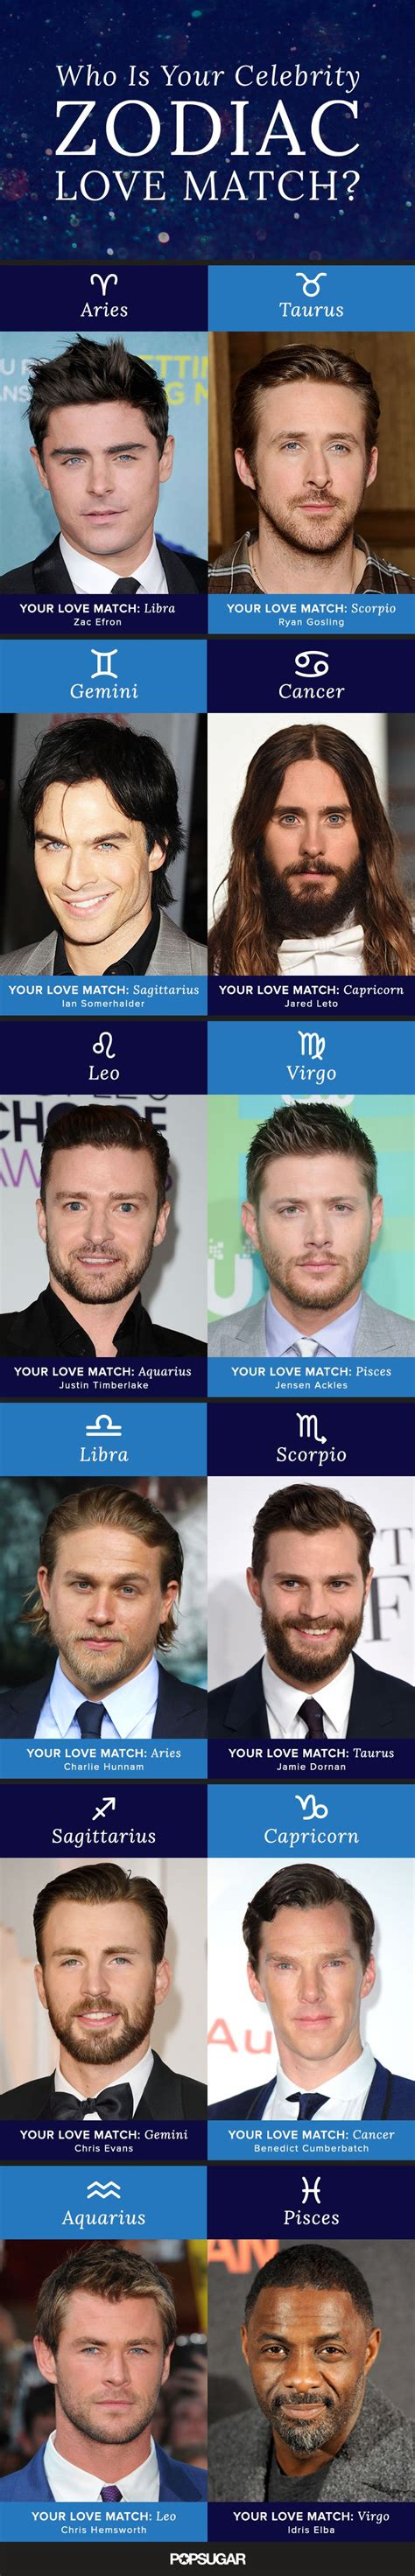 what s your celebrity zodiac match up who is your celebrity man crush match your zodiac sign